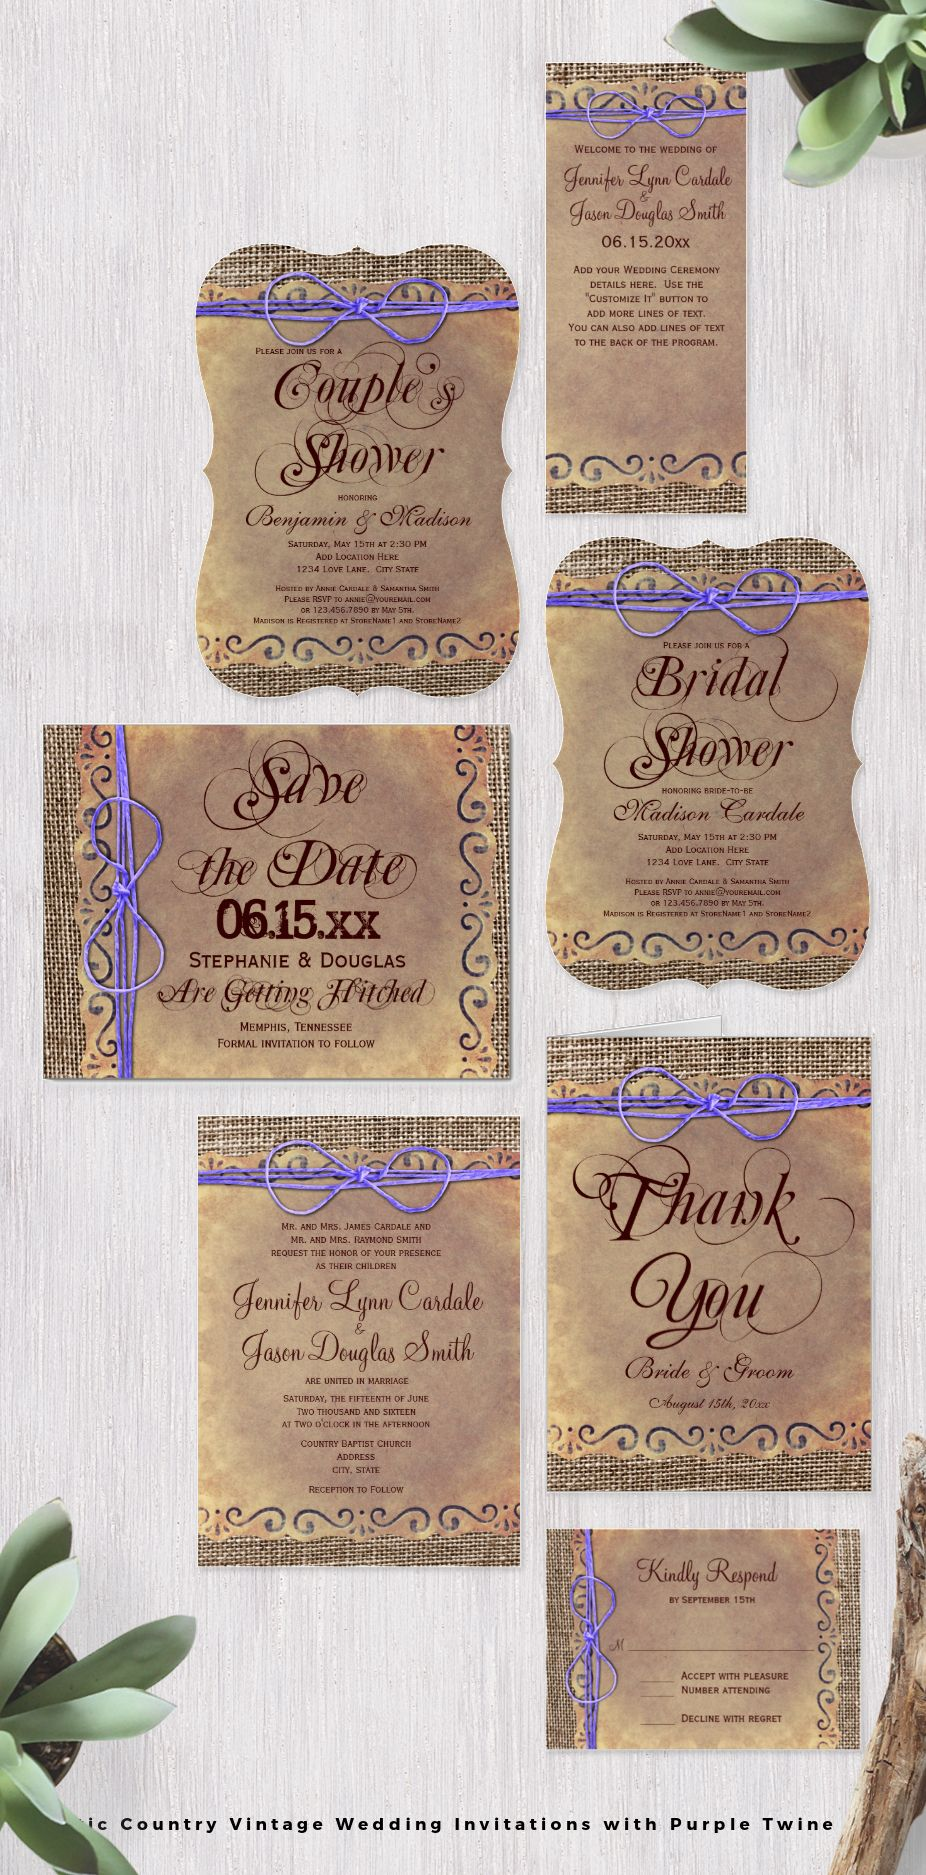 Rustic Country Wedding Invitation Set With Vintage Paper Design